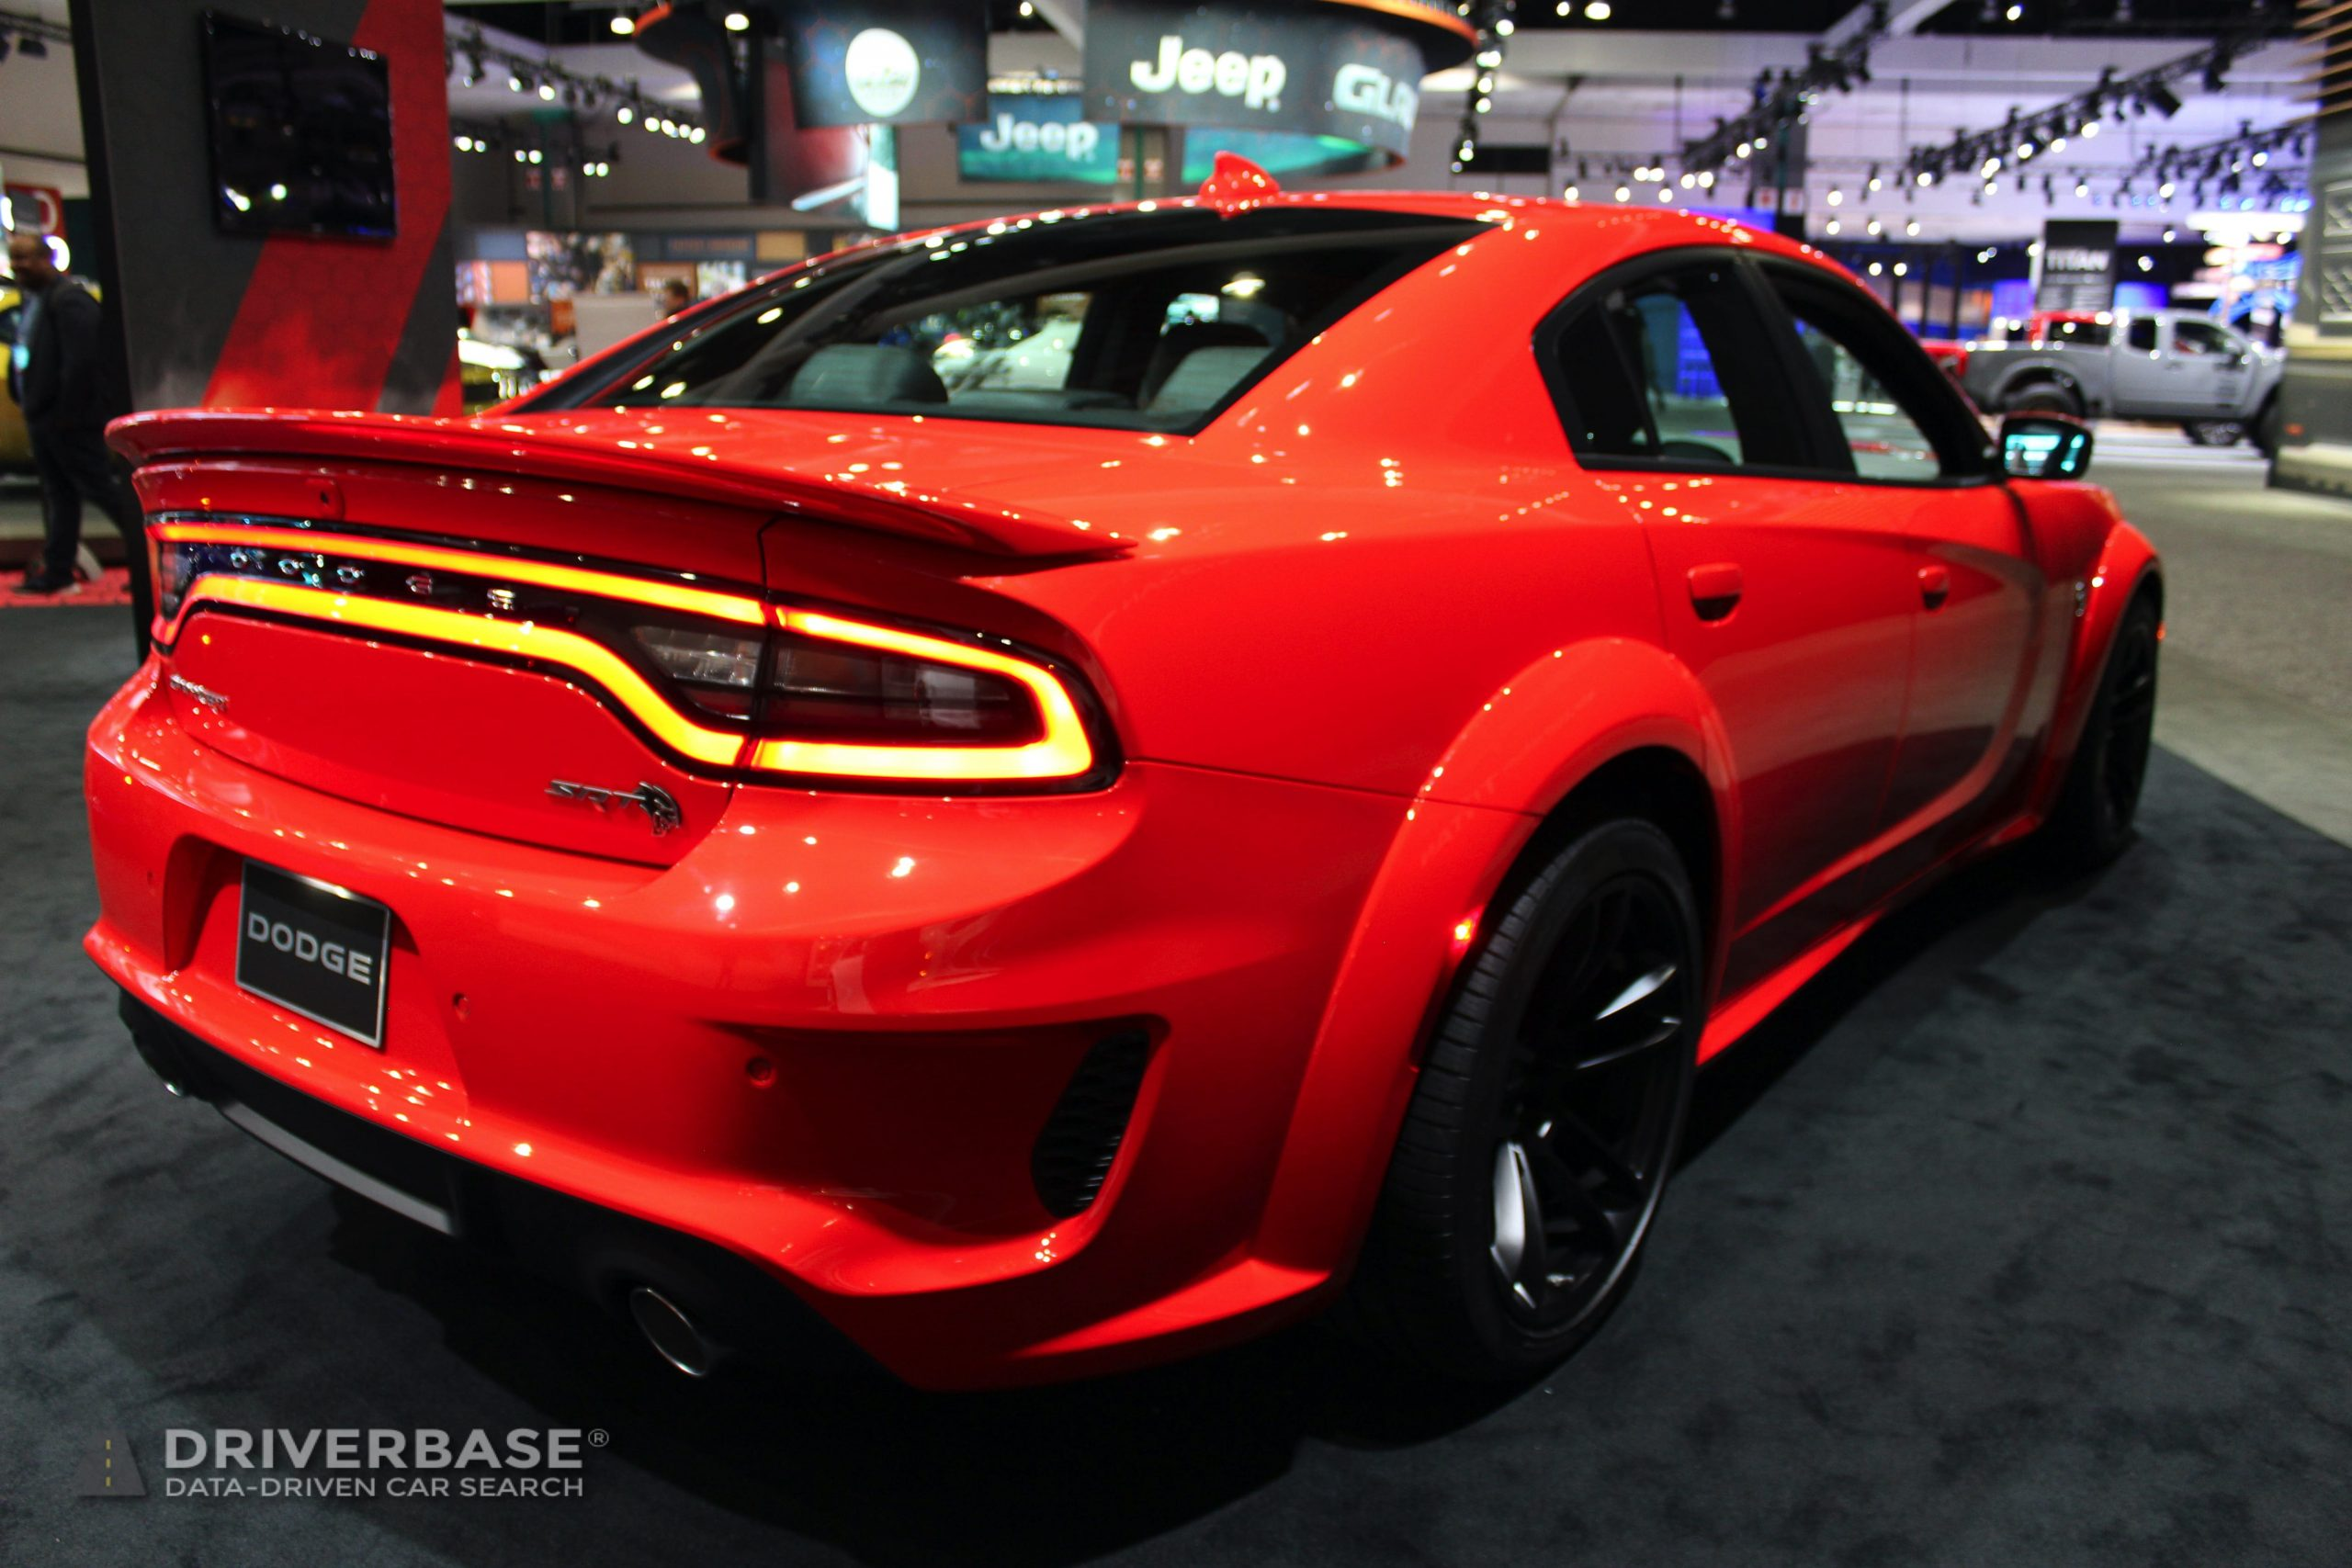 2020 Dodge Charger SRT Hellcat at the 2019 Los Angeles Auto Show